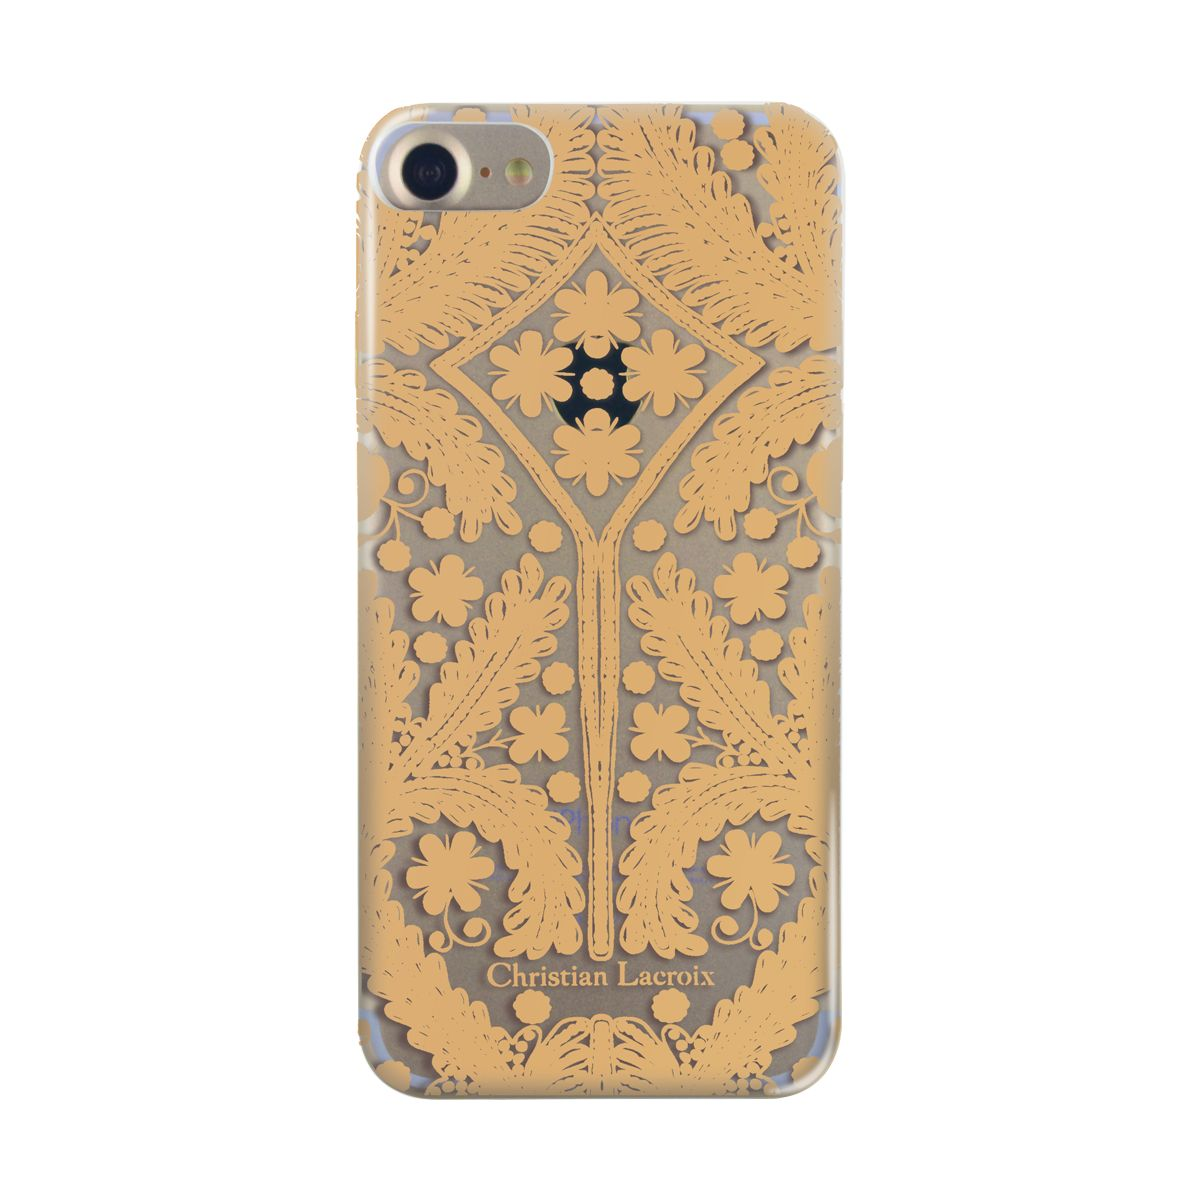 Coque CHRISTIAN LACROIX iPhone 7/8 Paseo transparente métal d...